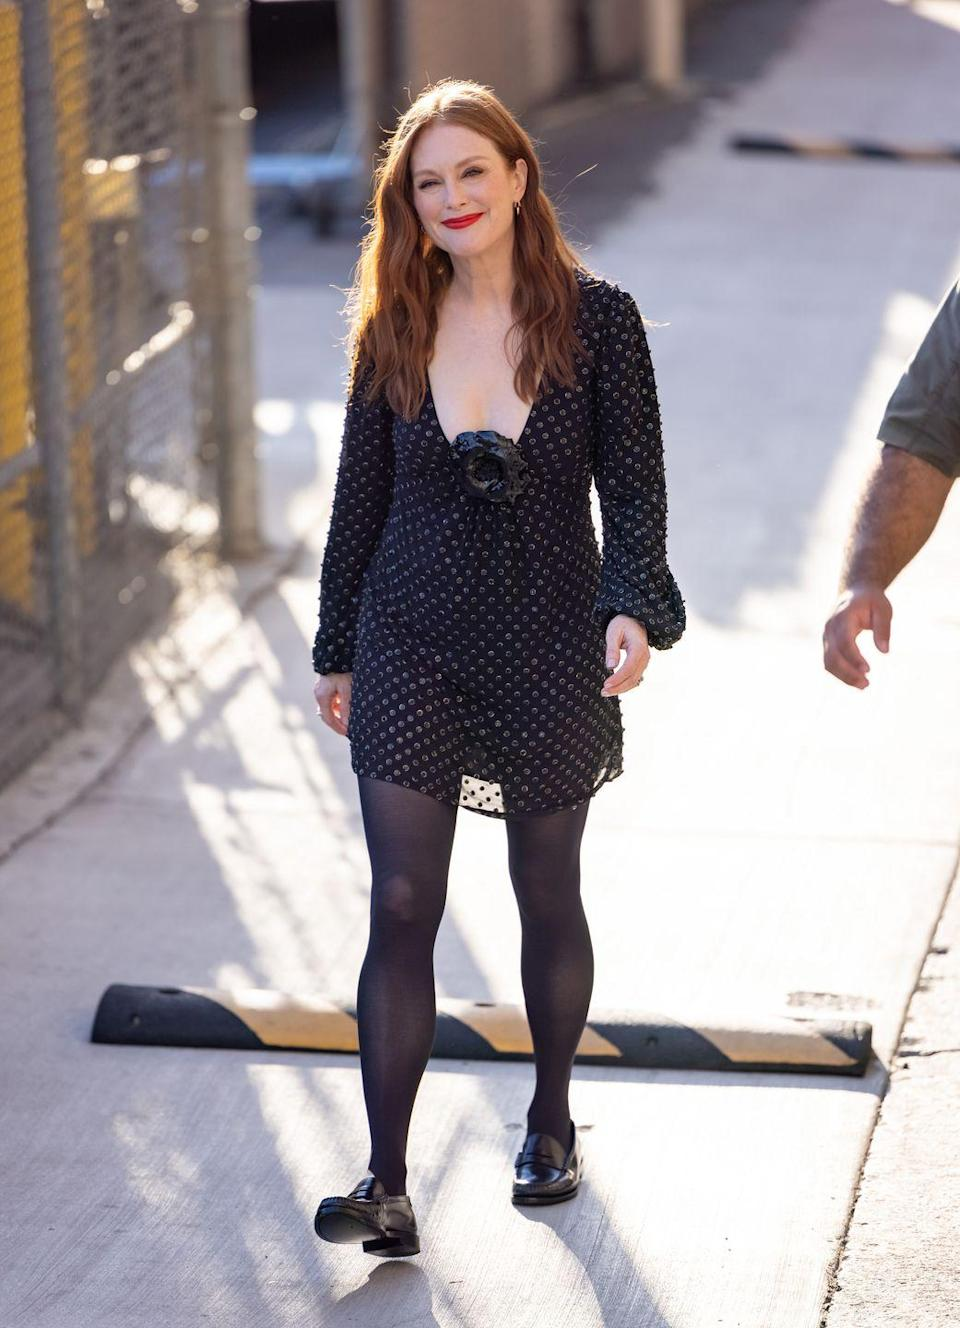 <p><strong>22 September</strong></p><p>The actress was seen arriving for an appearance on Jimmy Kimmel Live wearing a polka-dot Saint Laurent dress and loafers. </p>